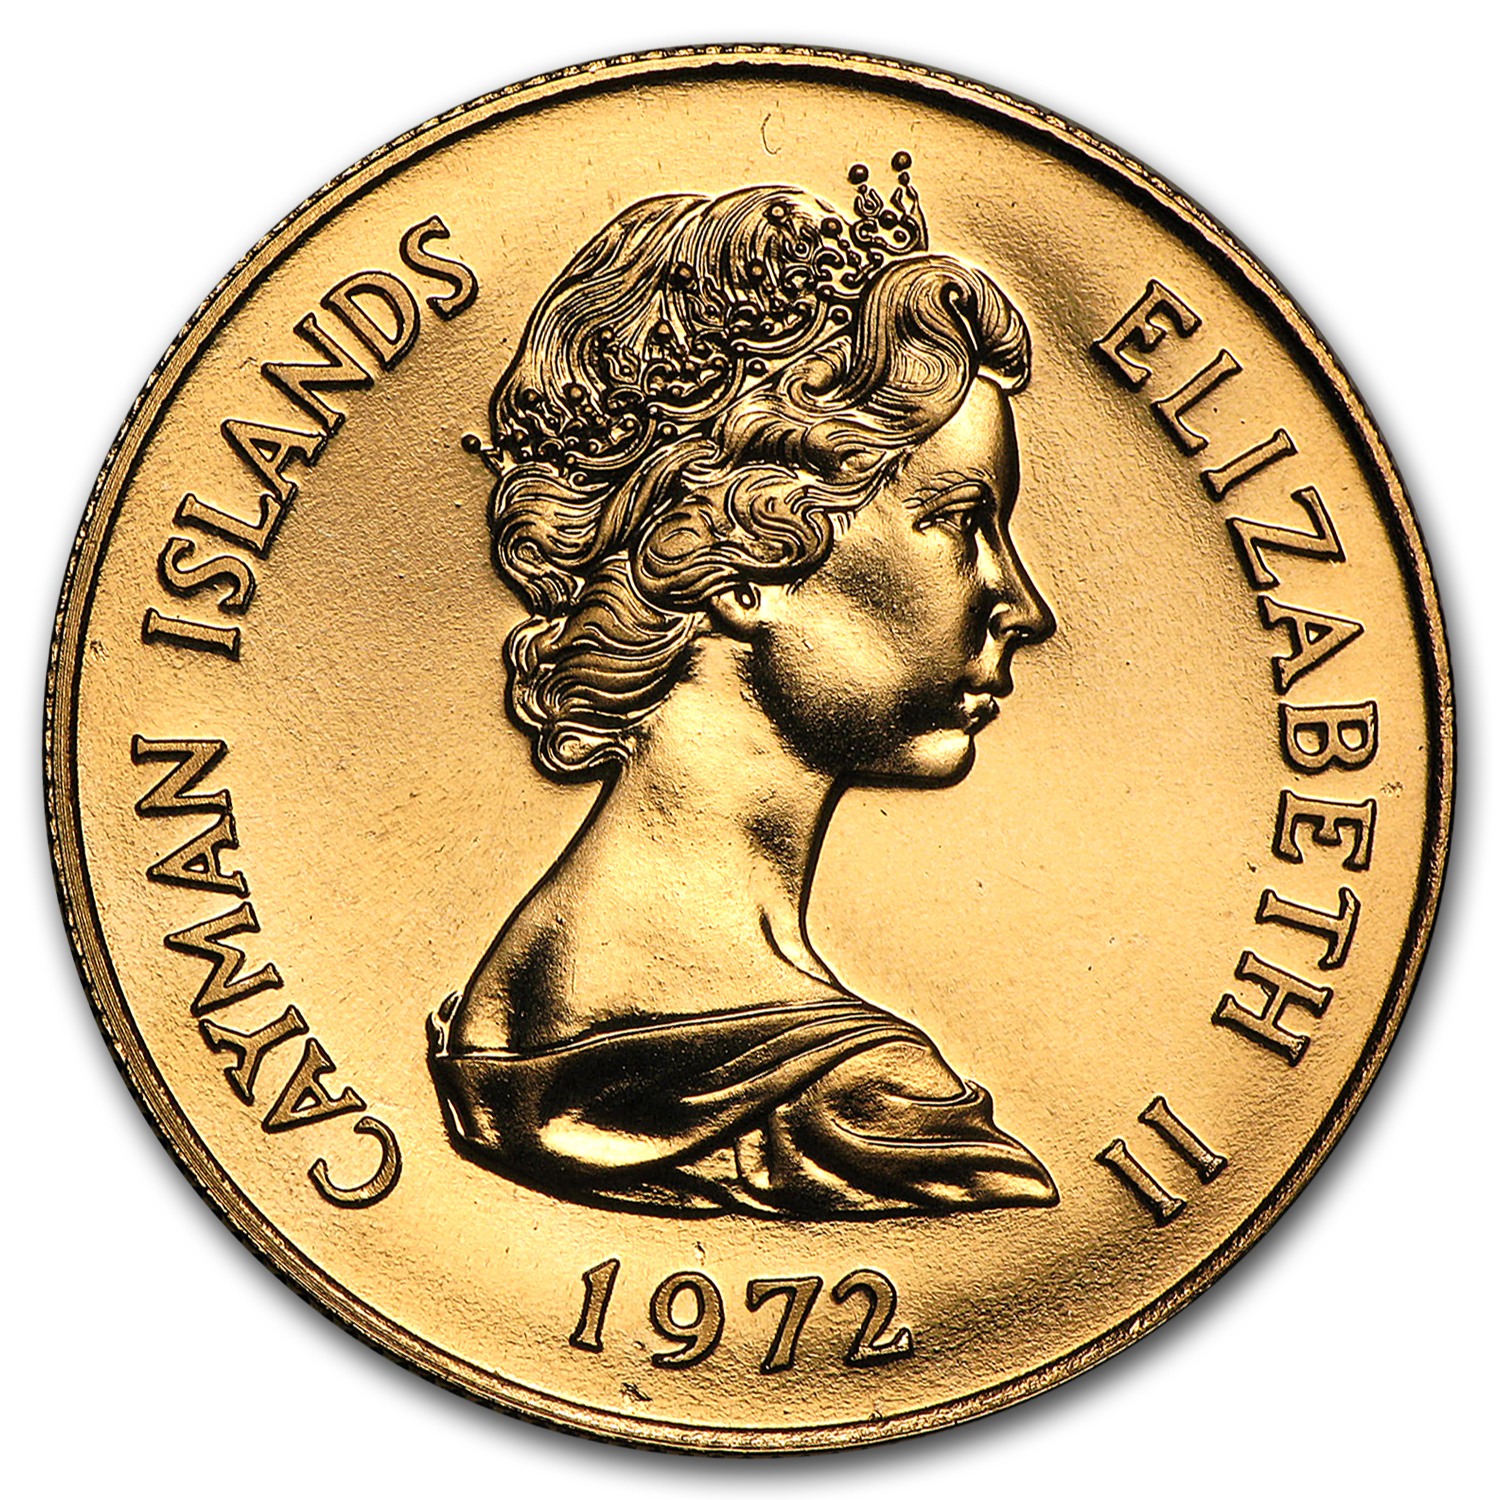 Cayman Islands 1972 25 Dollars Gold Proof